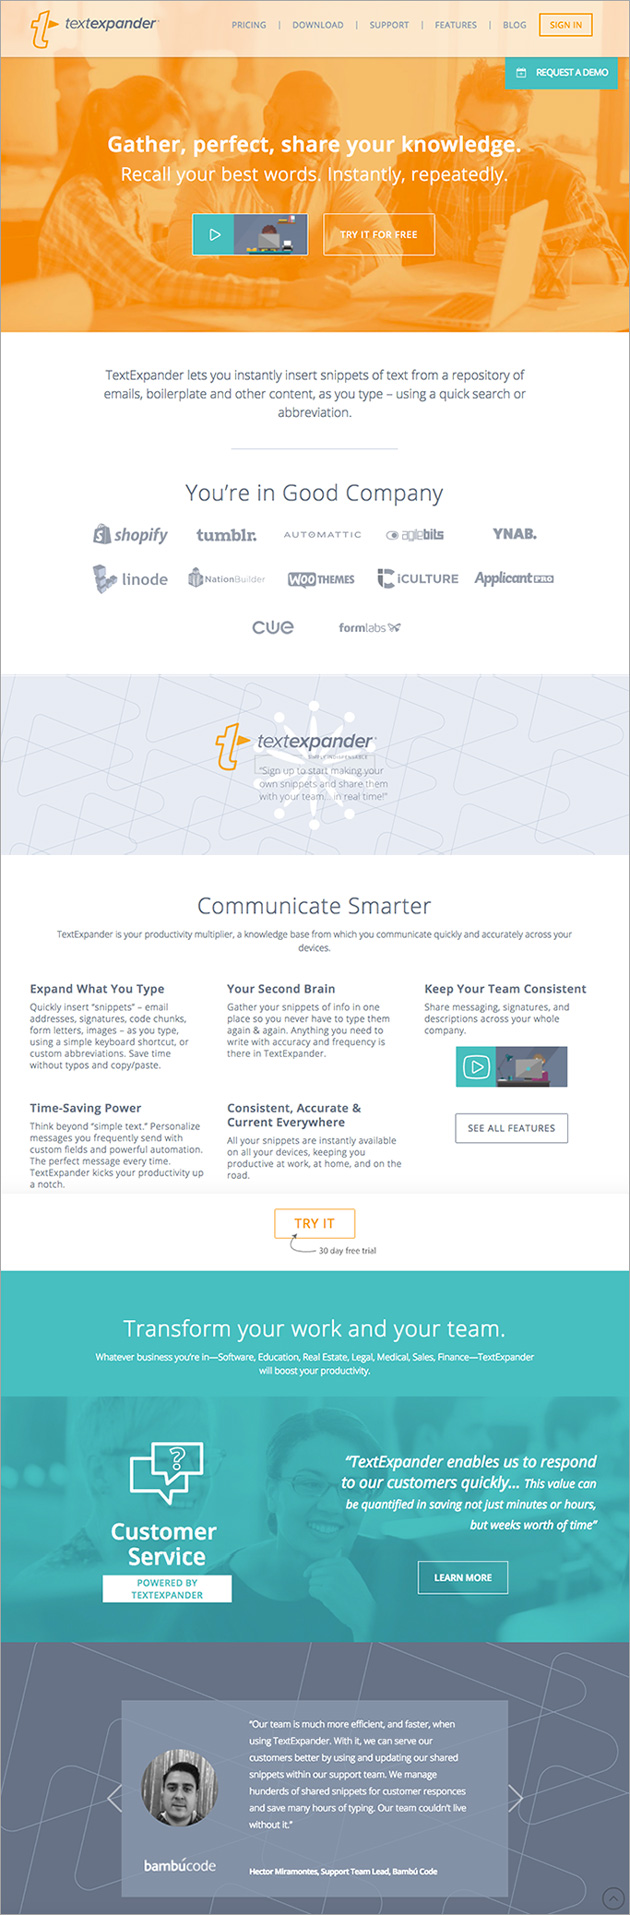 Website design for TextExpander app. Allegro Design